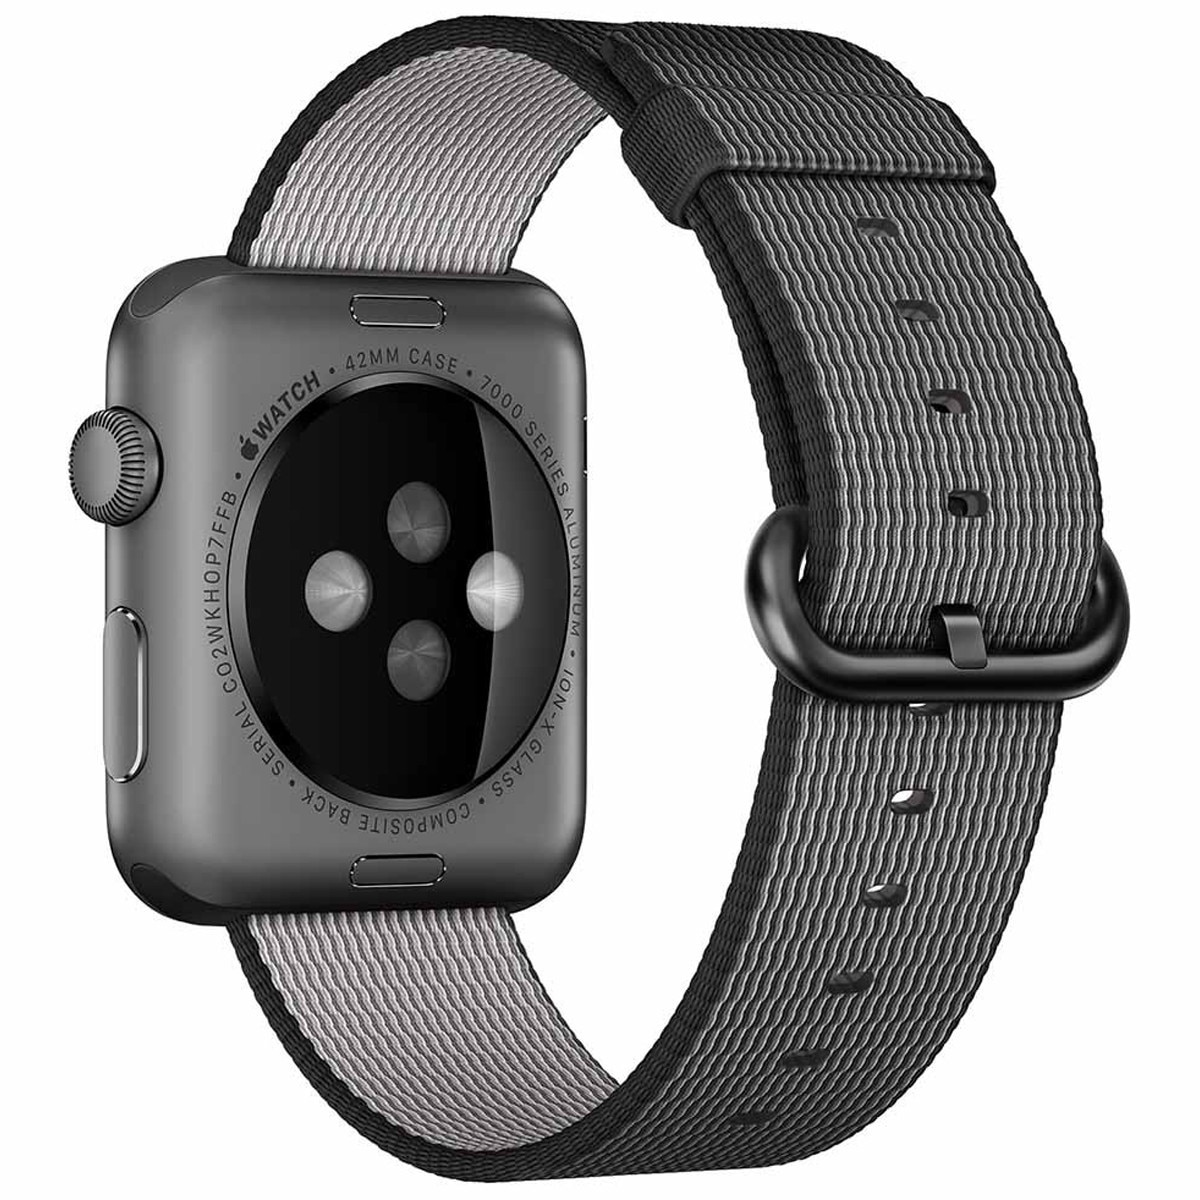 Fotografie Curea iUni pentru Apple Watch 38 mm, Woven Strap, Nylon, Electric Gray